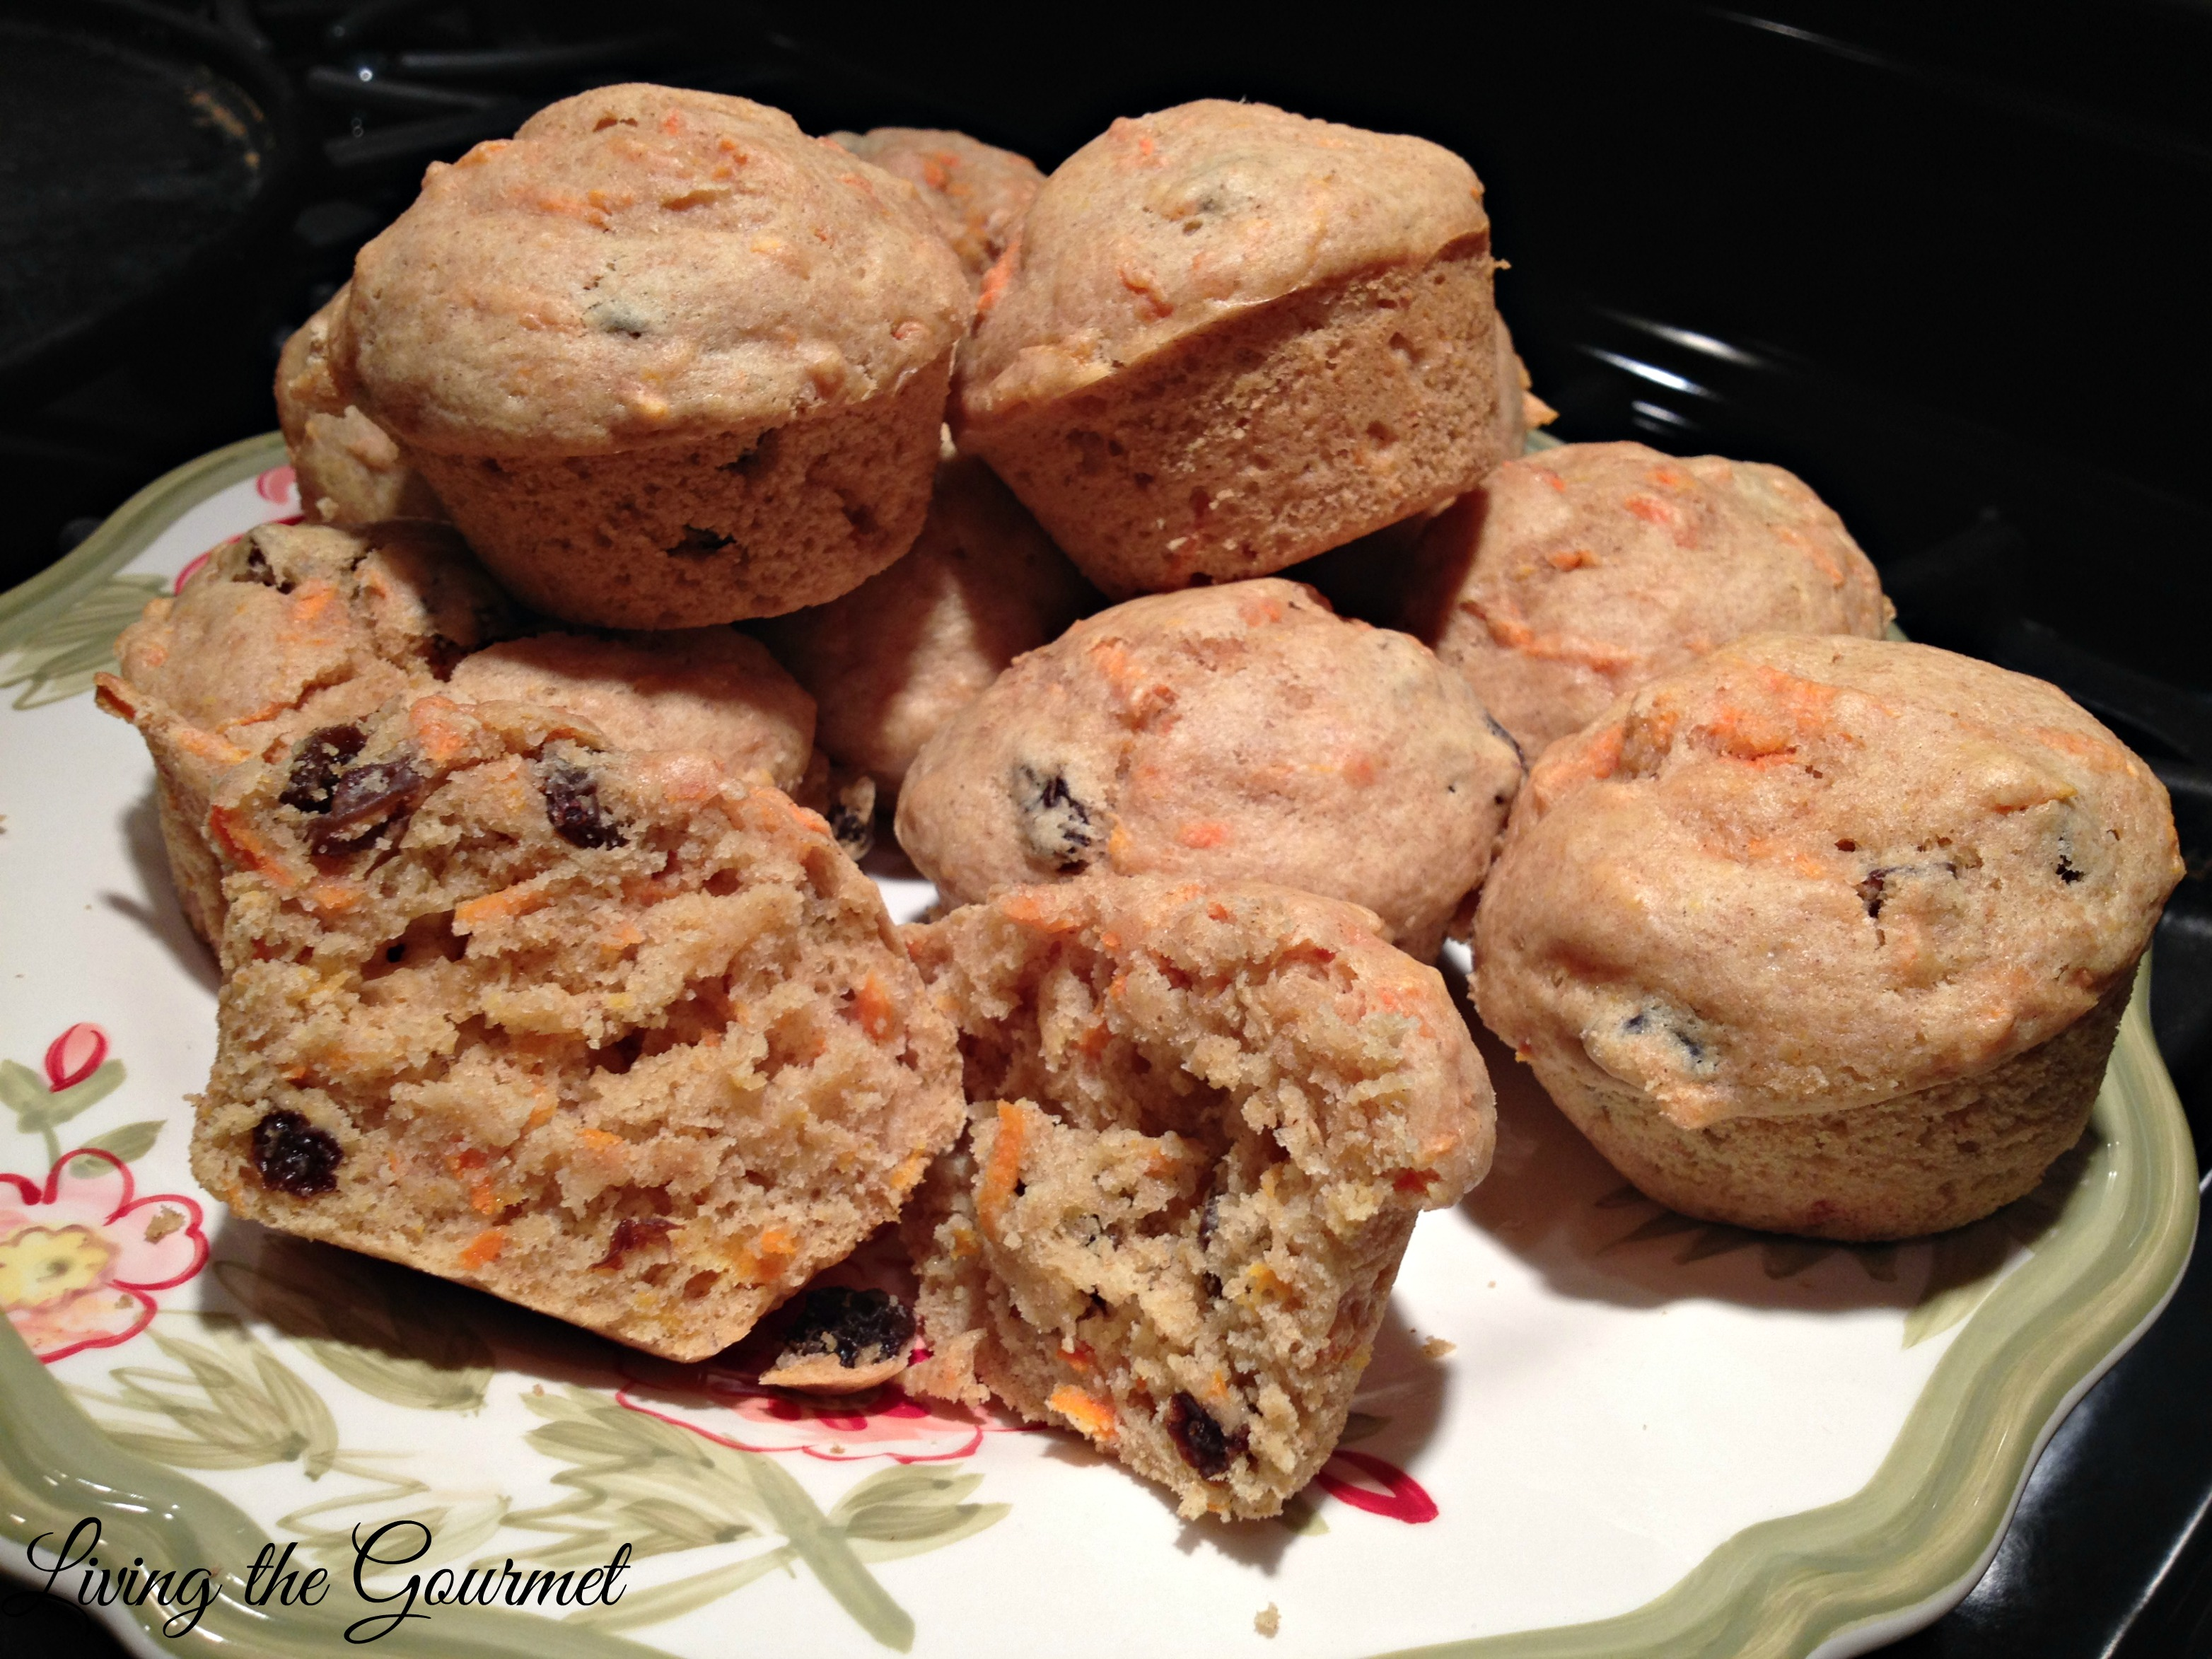 Light Carrot and Raisin Breakfast Muffins2